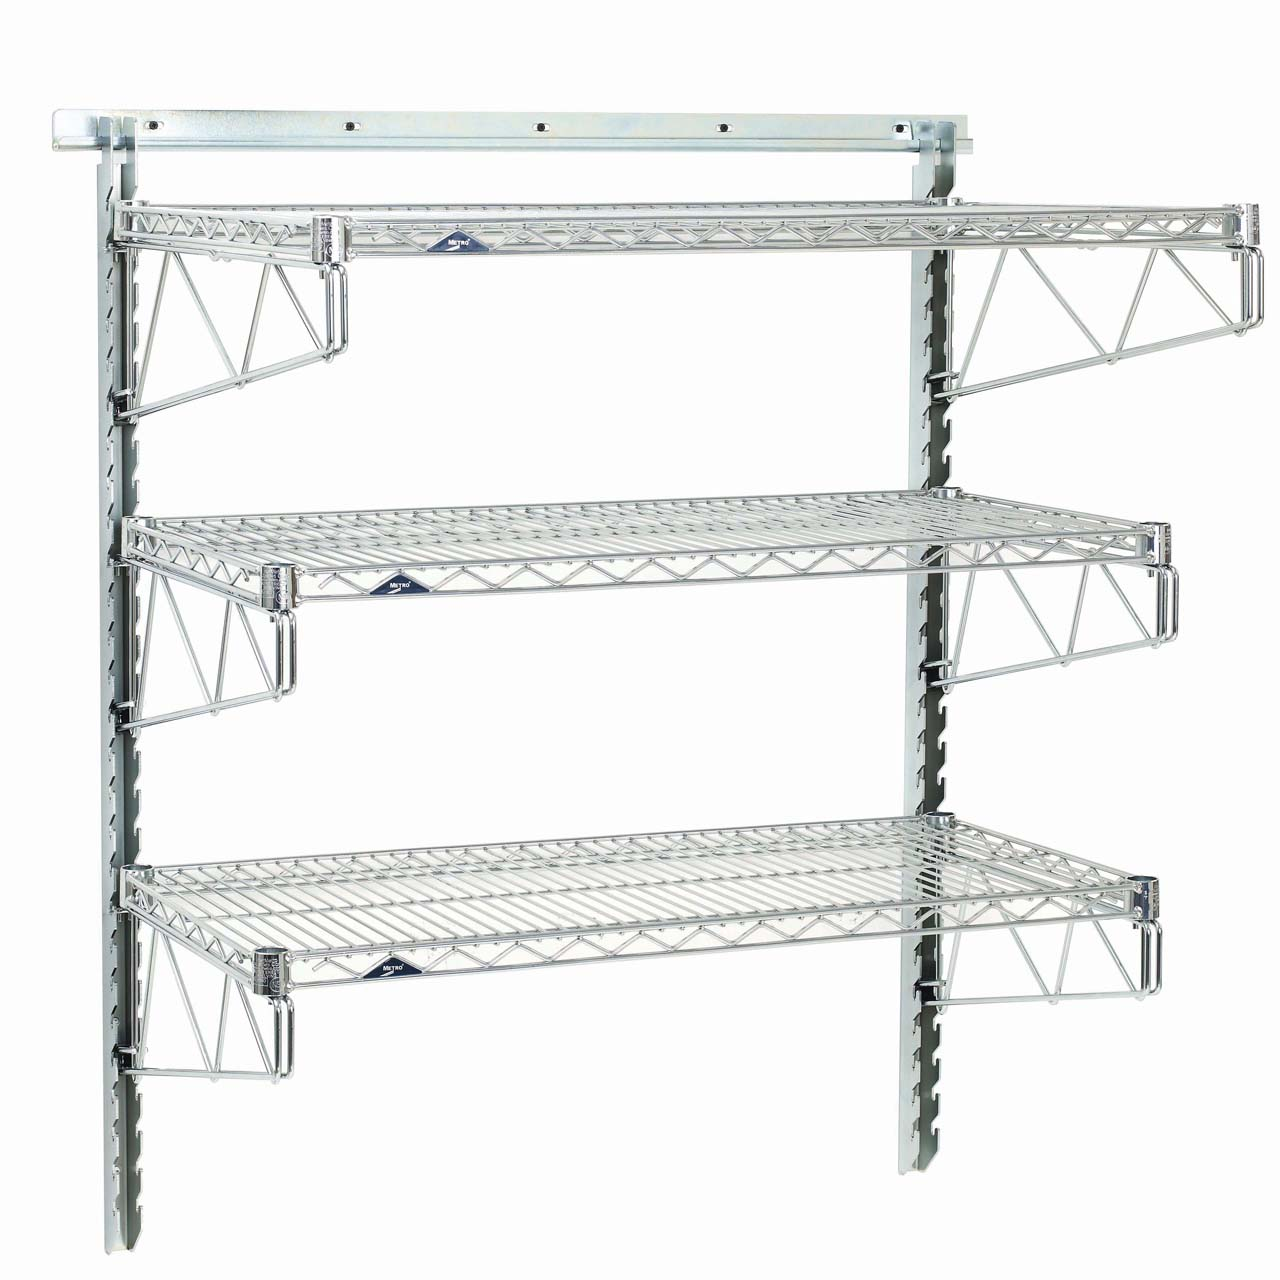 Striking Metal Shelving Design To Increase Your Storage Space: Wire Mesh Shelving